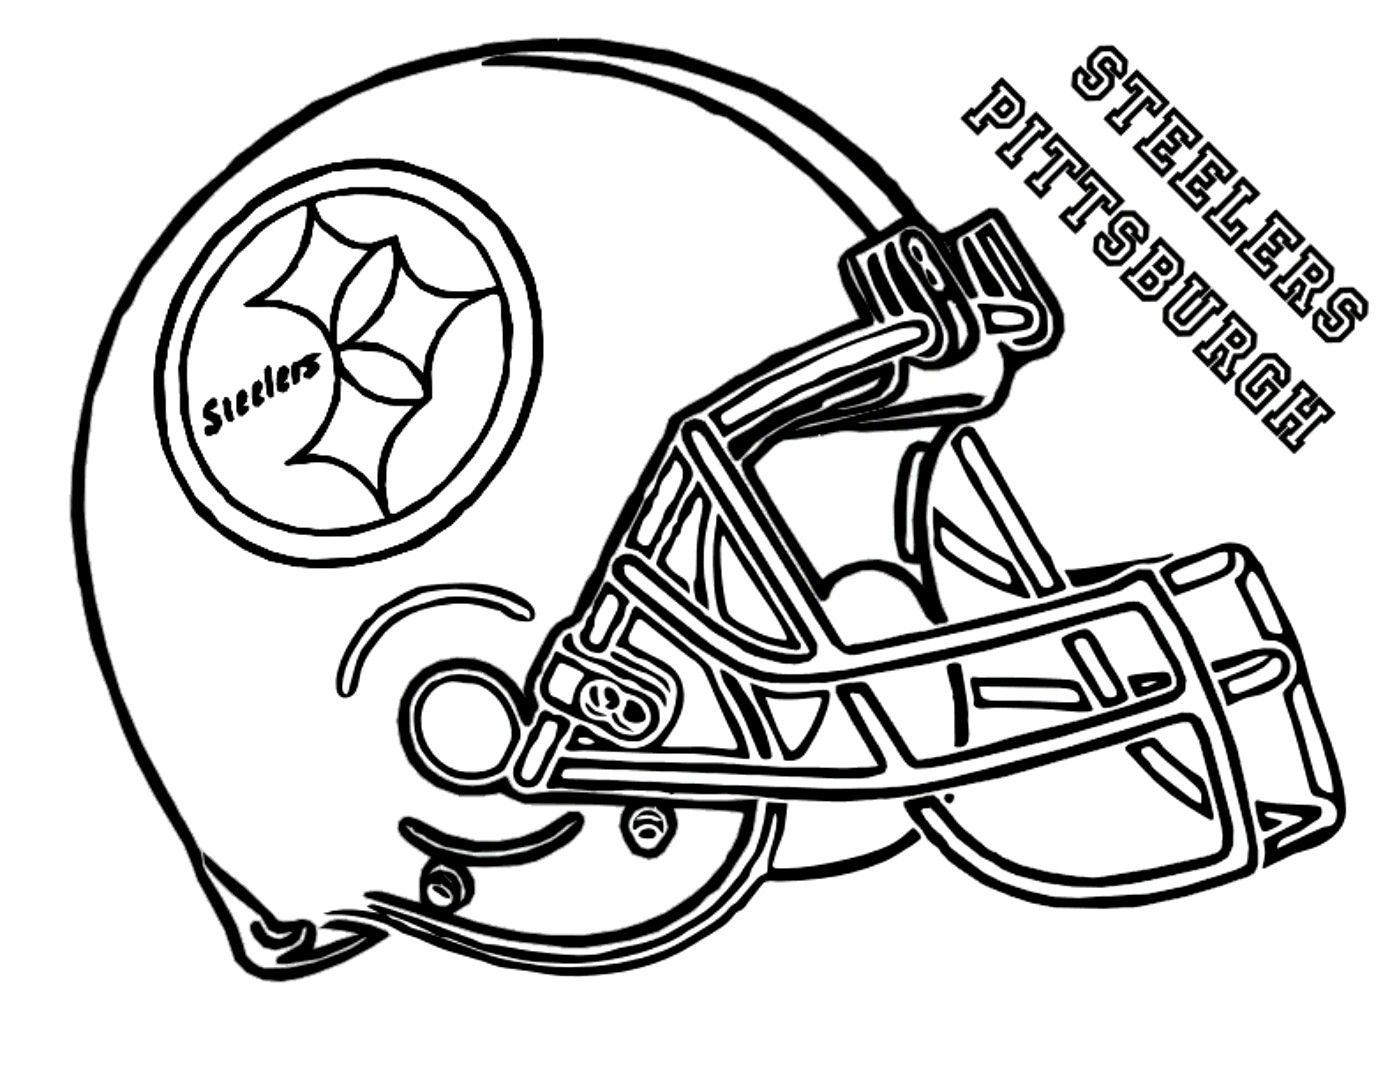 Pin By Brenda Guerrero On Arts N Crafts Football Coloring Pages Nfl Football Helmets Football Helmets